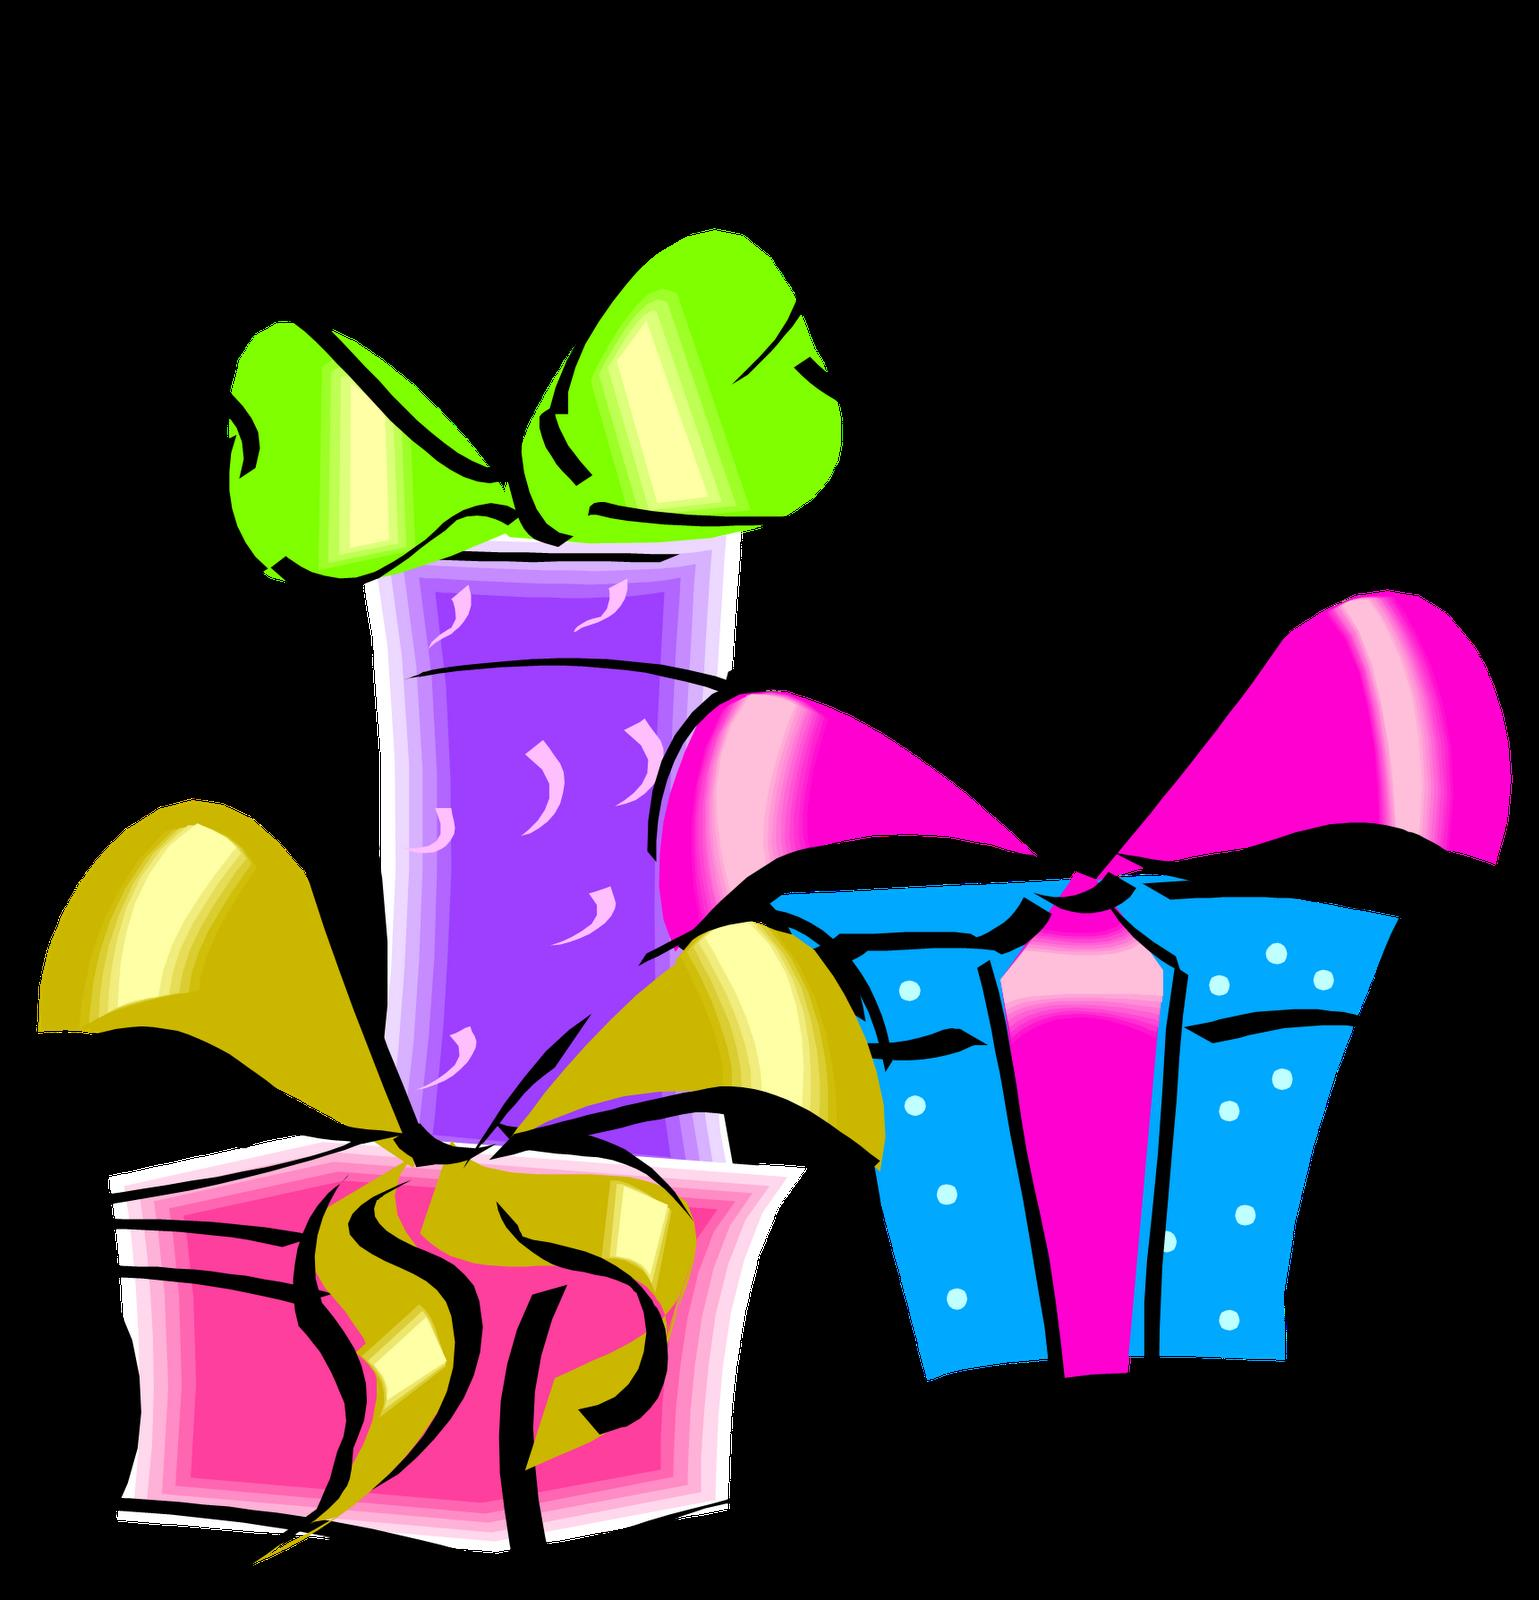 free clipart birthday presents ; birthday-gift-png-clip-art-0